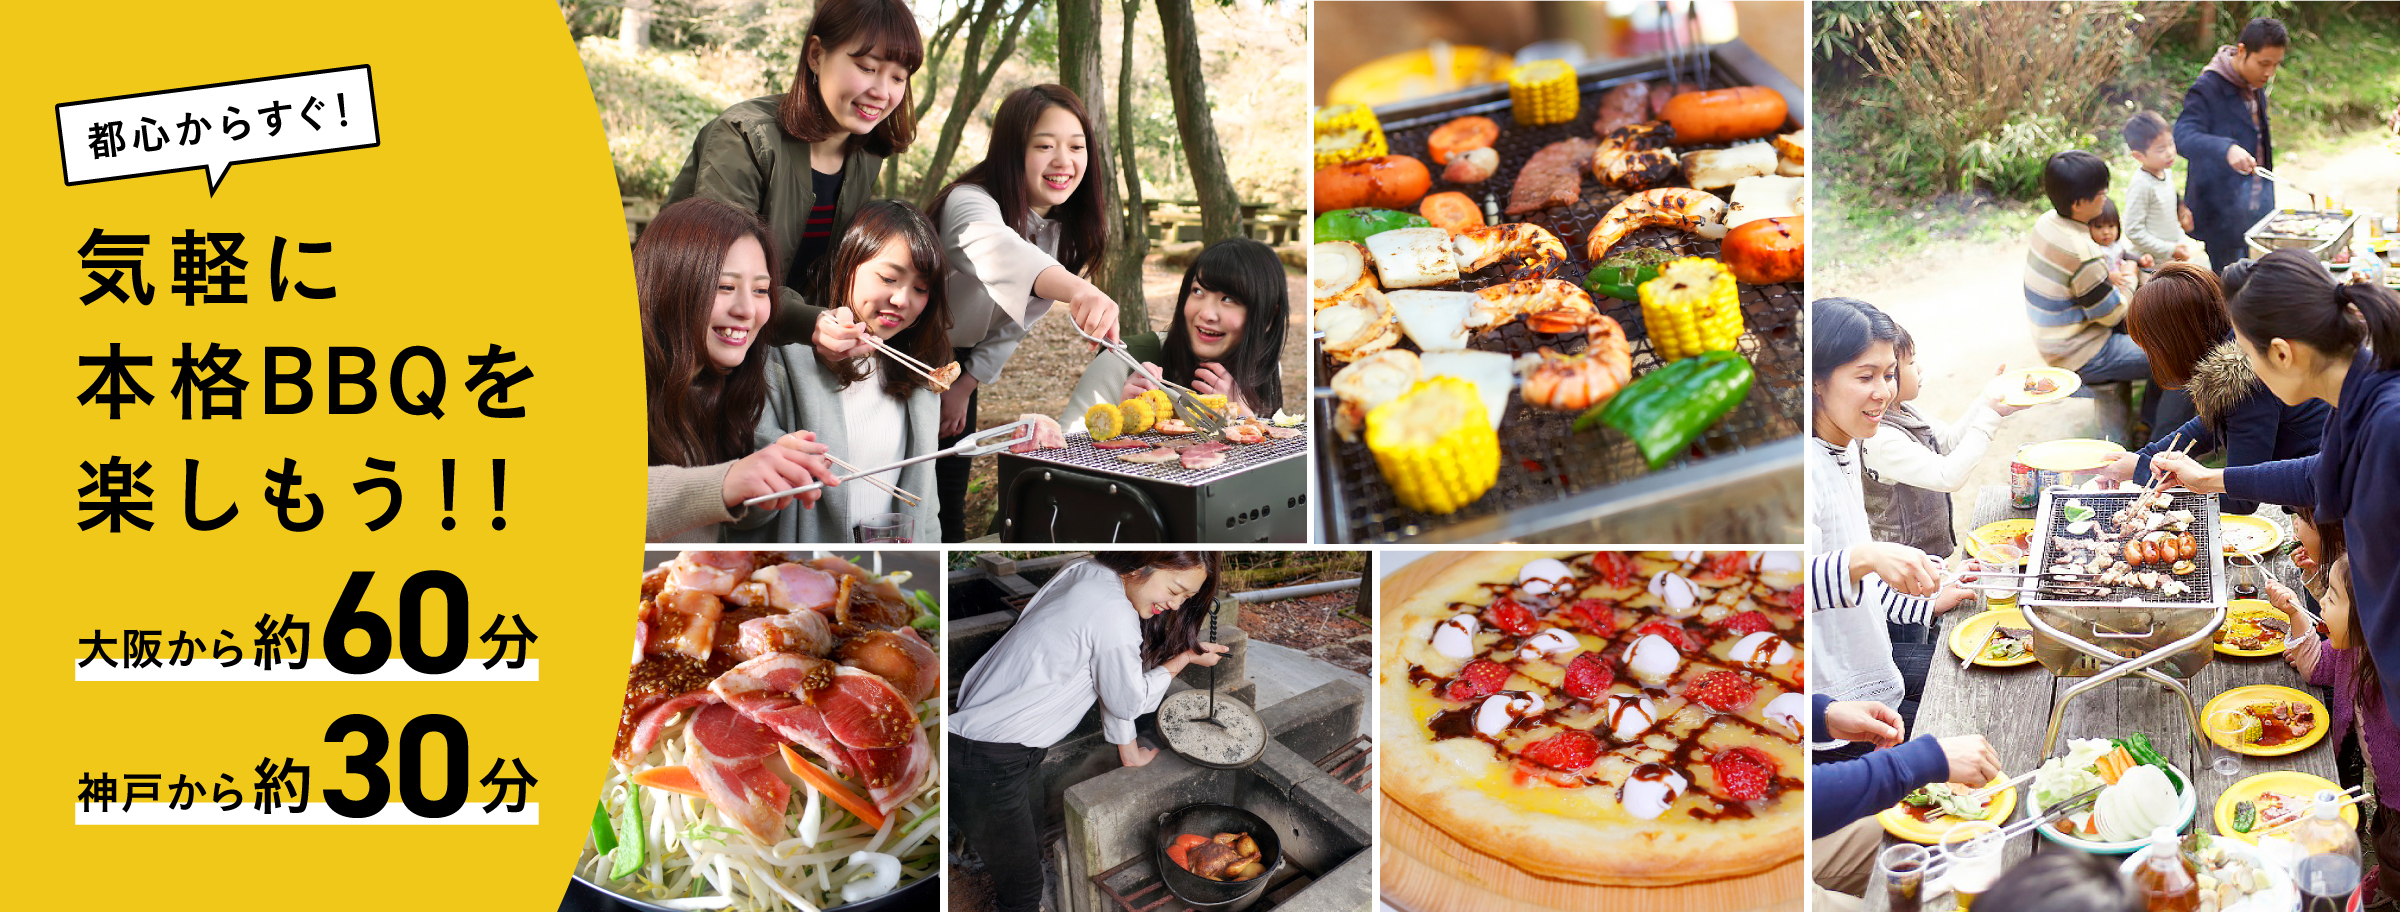 Right from the city center! Feel free to enjoy authentic BBQ! ! [About 60 minutes from Osaka / about 30 minutes from Kobe]